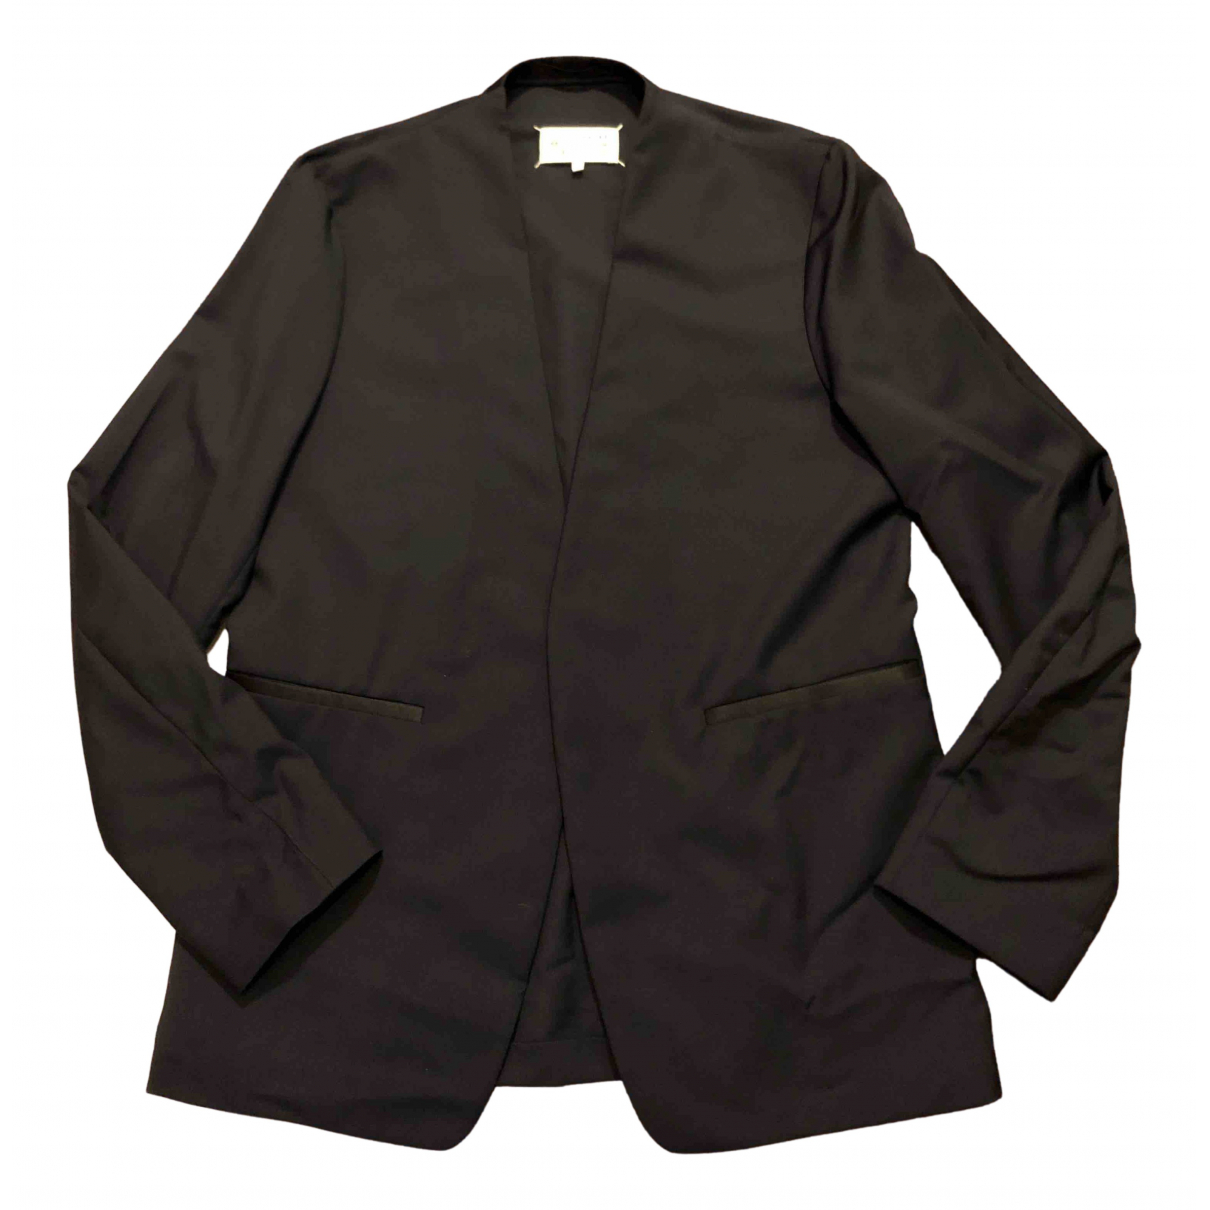 Maison Martin Margiela N Black Wool jacket  for Men 48 FR